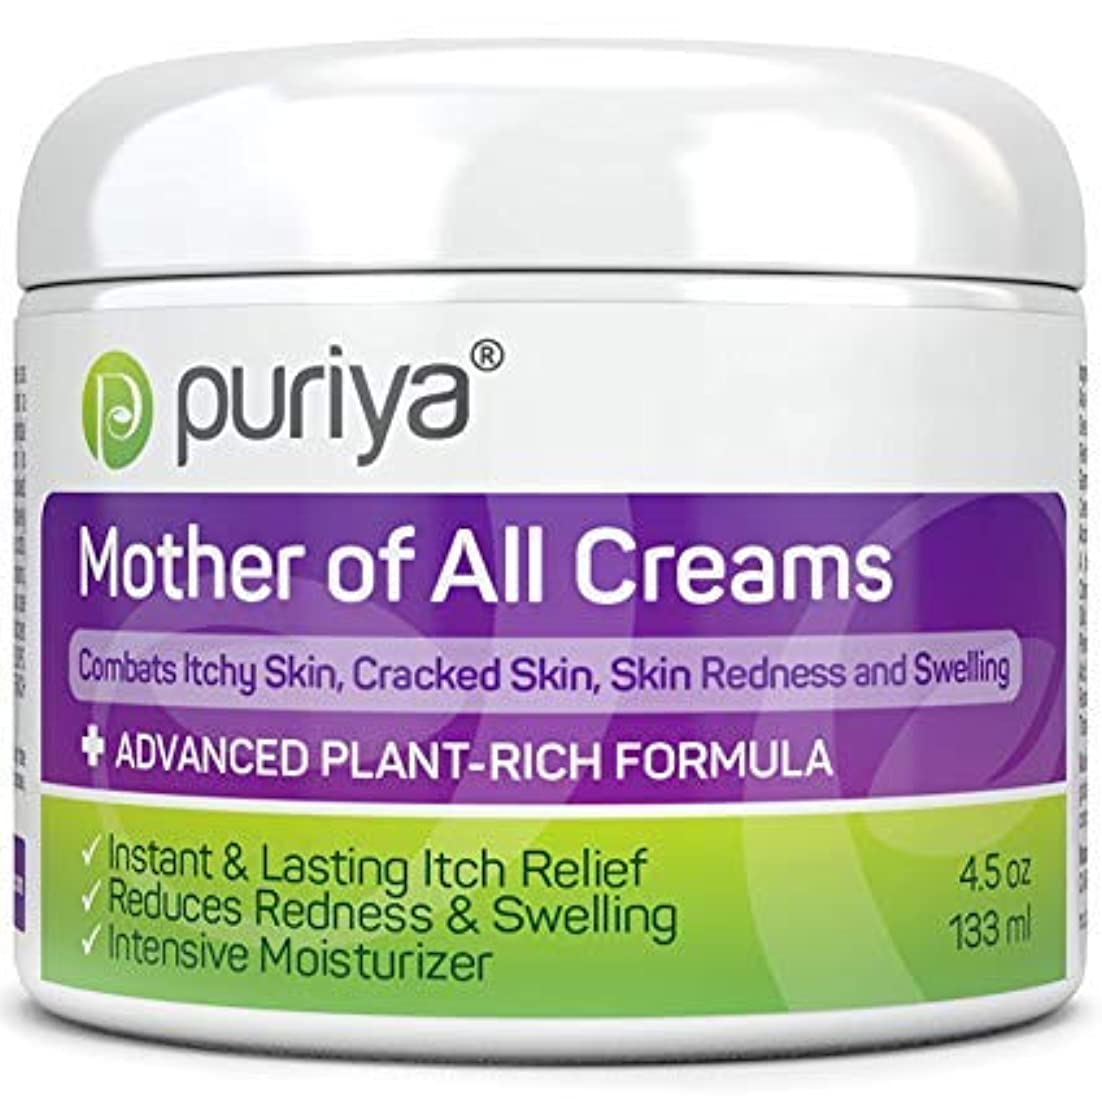 プランター見えないエージェントPuriya マザーオブオールクリーム Mother of All Creams Cream For Eczema, Psoriasis, Dermatitis and Rashes. Powerful Plant Rich...